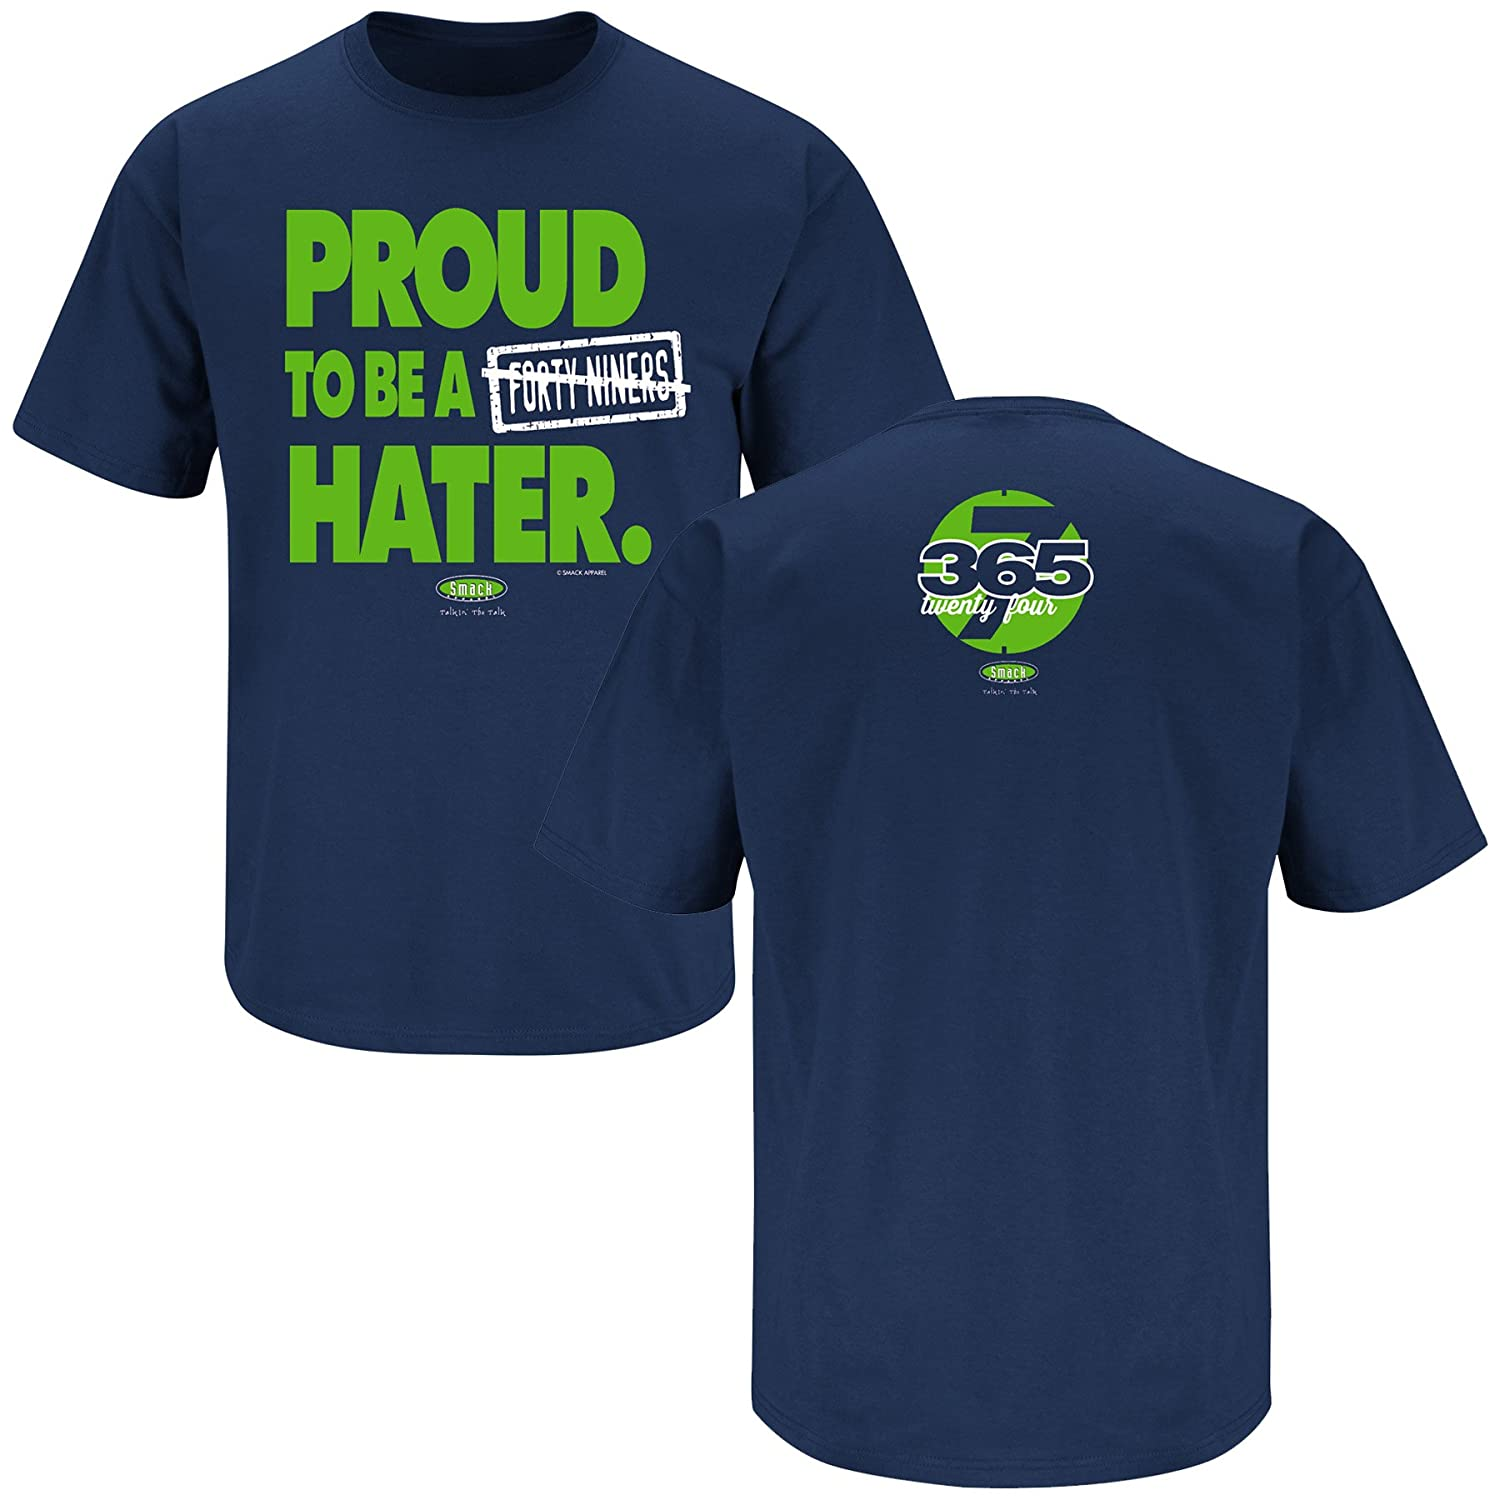 wholesale dealer 01002 73338 Smack Apparel Seattle Football Fans. Proud to be a 49ers Hater Navy T-Shirt  (S-5X)